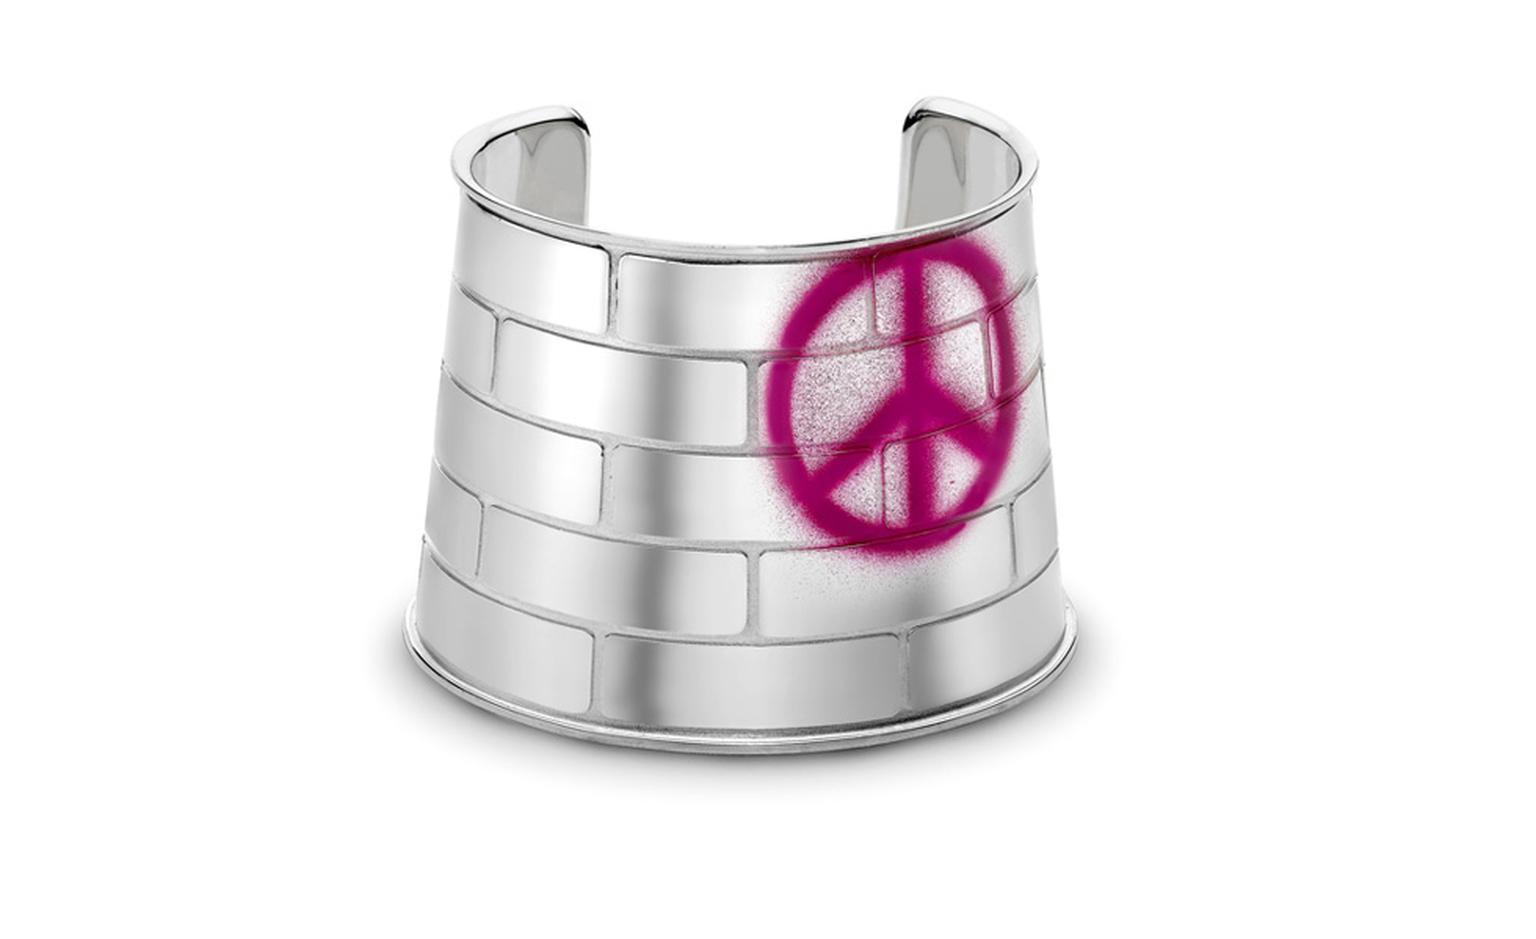 Brick wall cuff with peace sign 'Graffiti' from £825